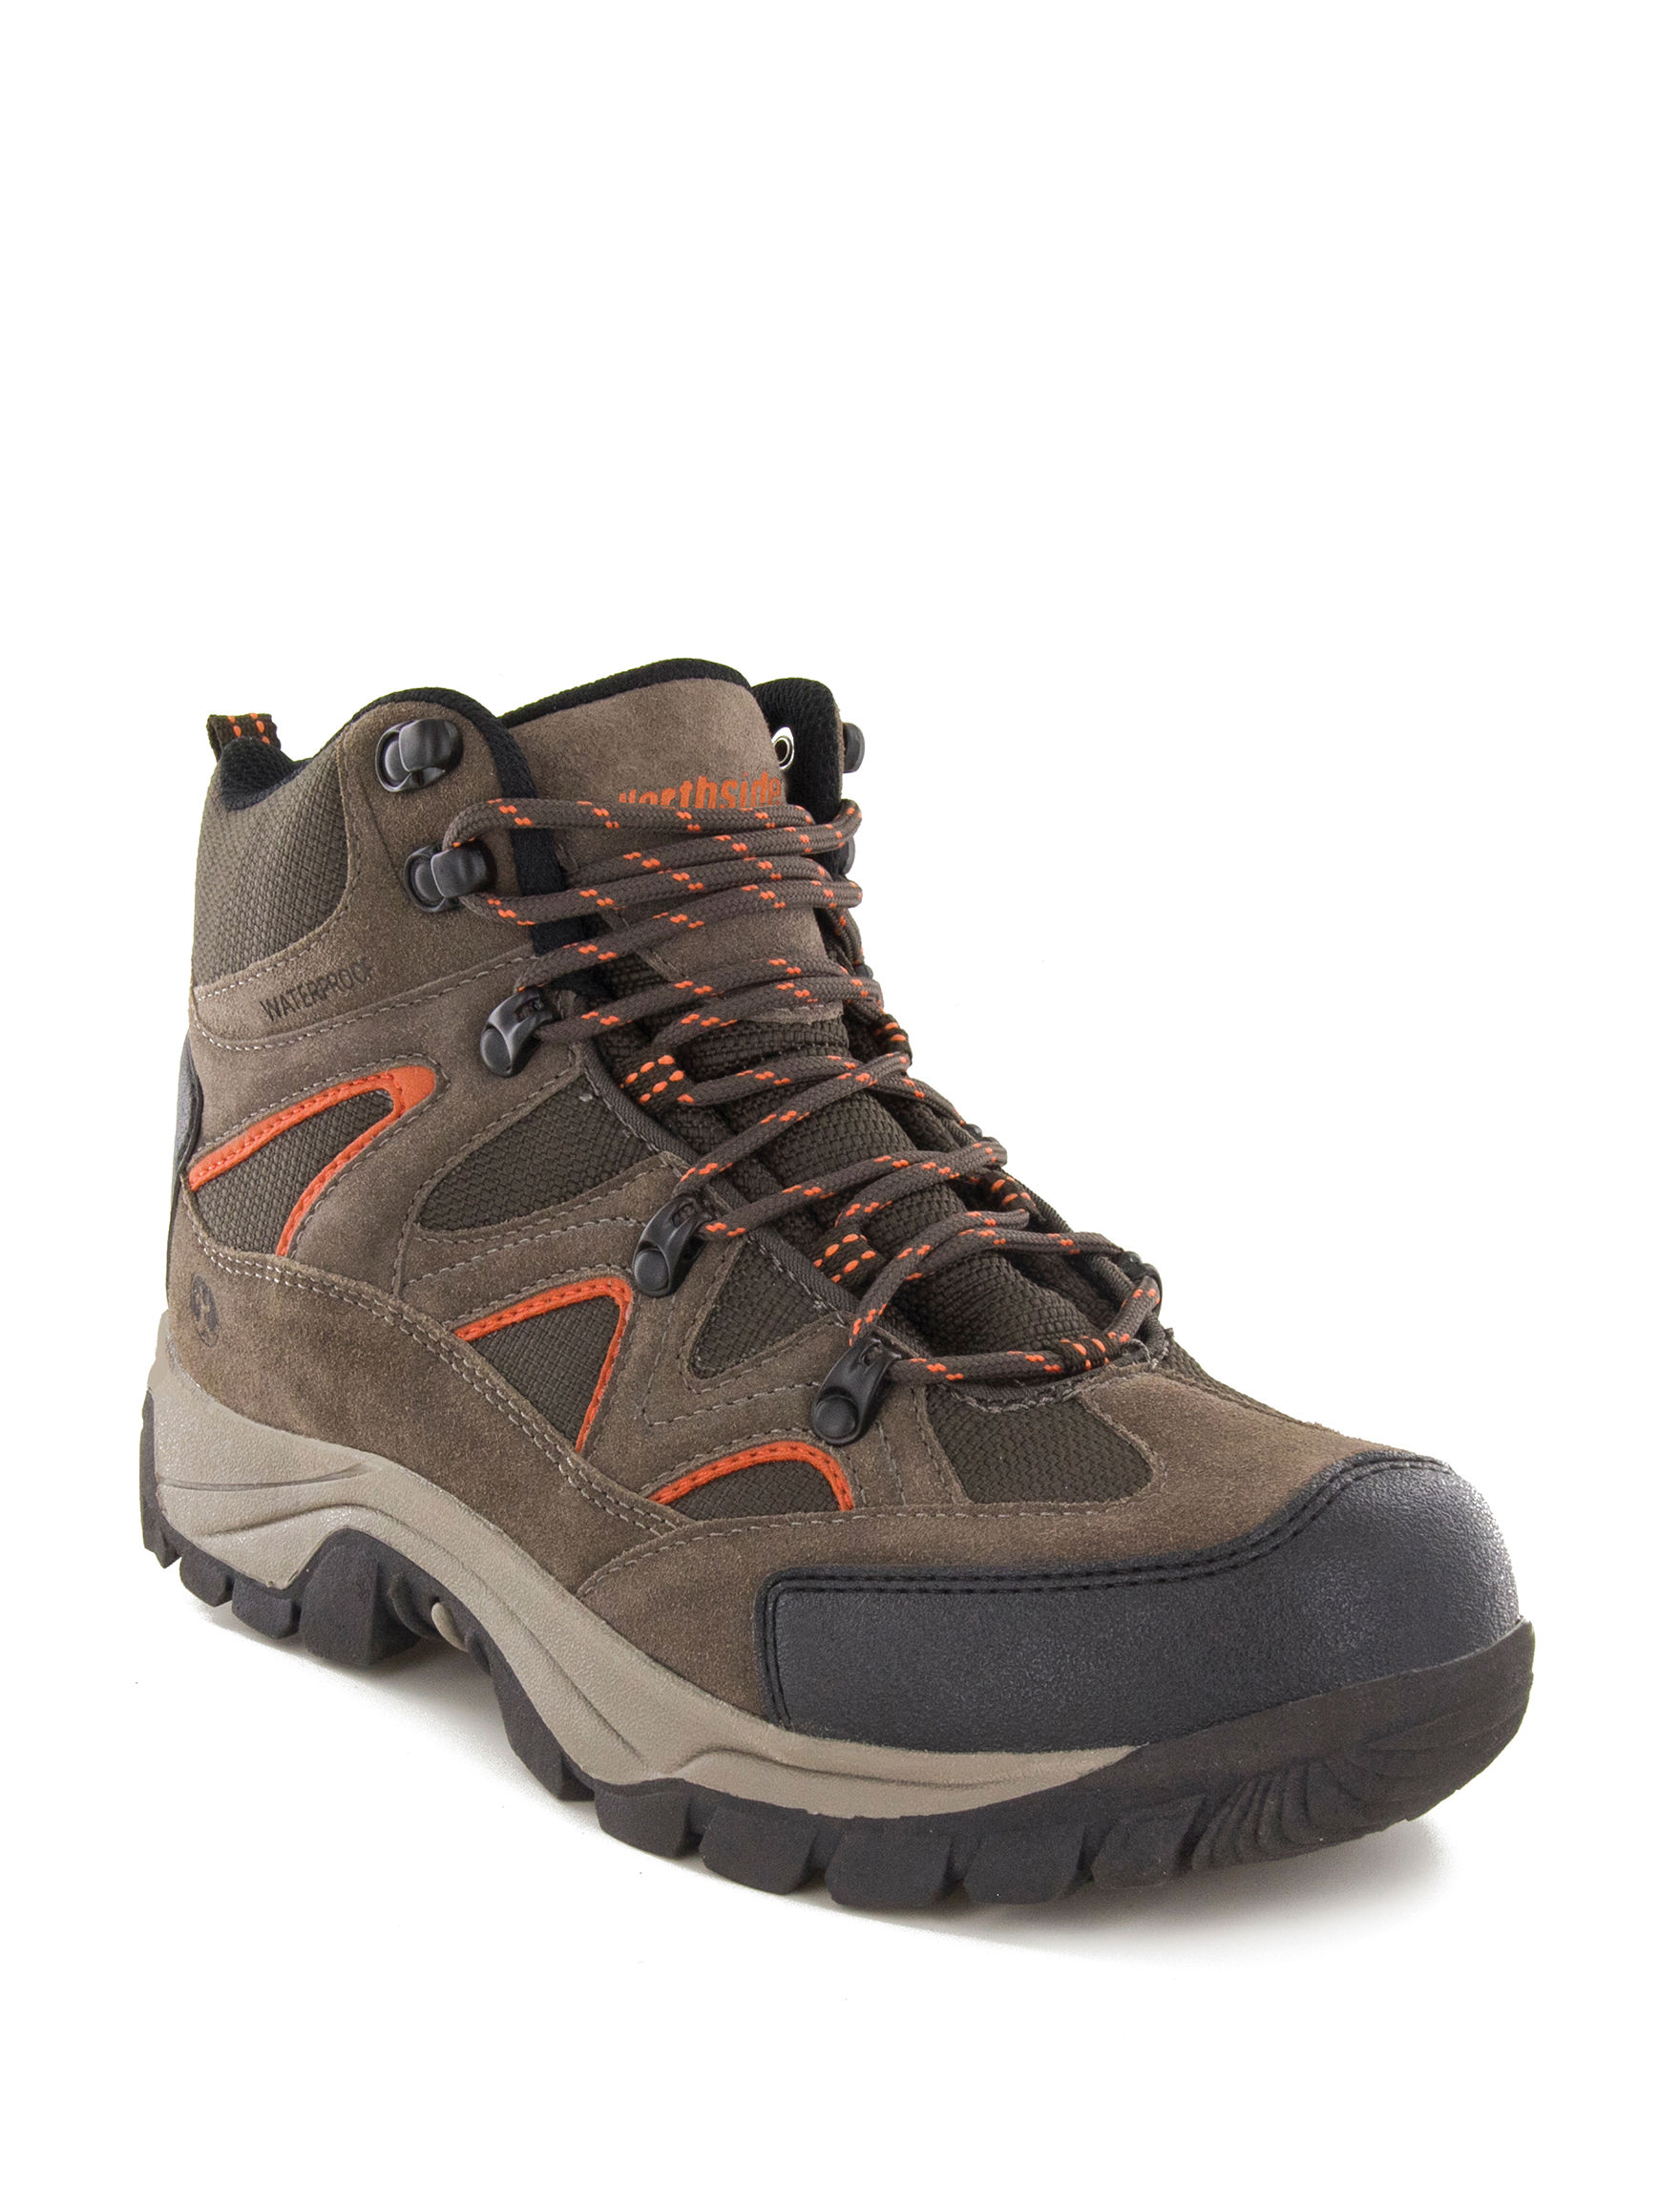 Northside Bark / Orange Hiking Boots Winter Boots